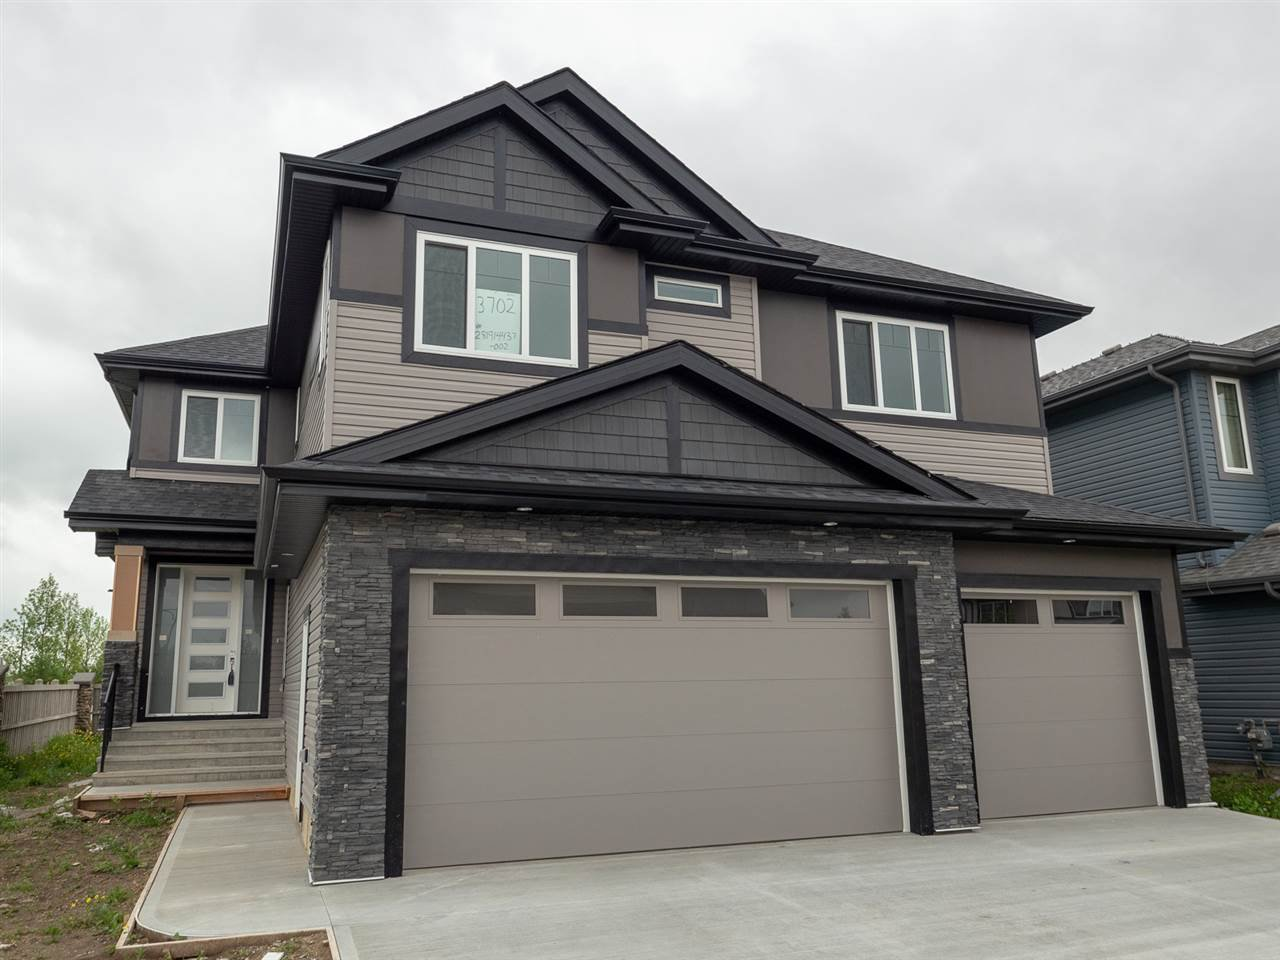 Main Photo: 3702 CLAXTON Place in Edmonton: Zone 55 House for sale : MLS®# E4154328